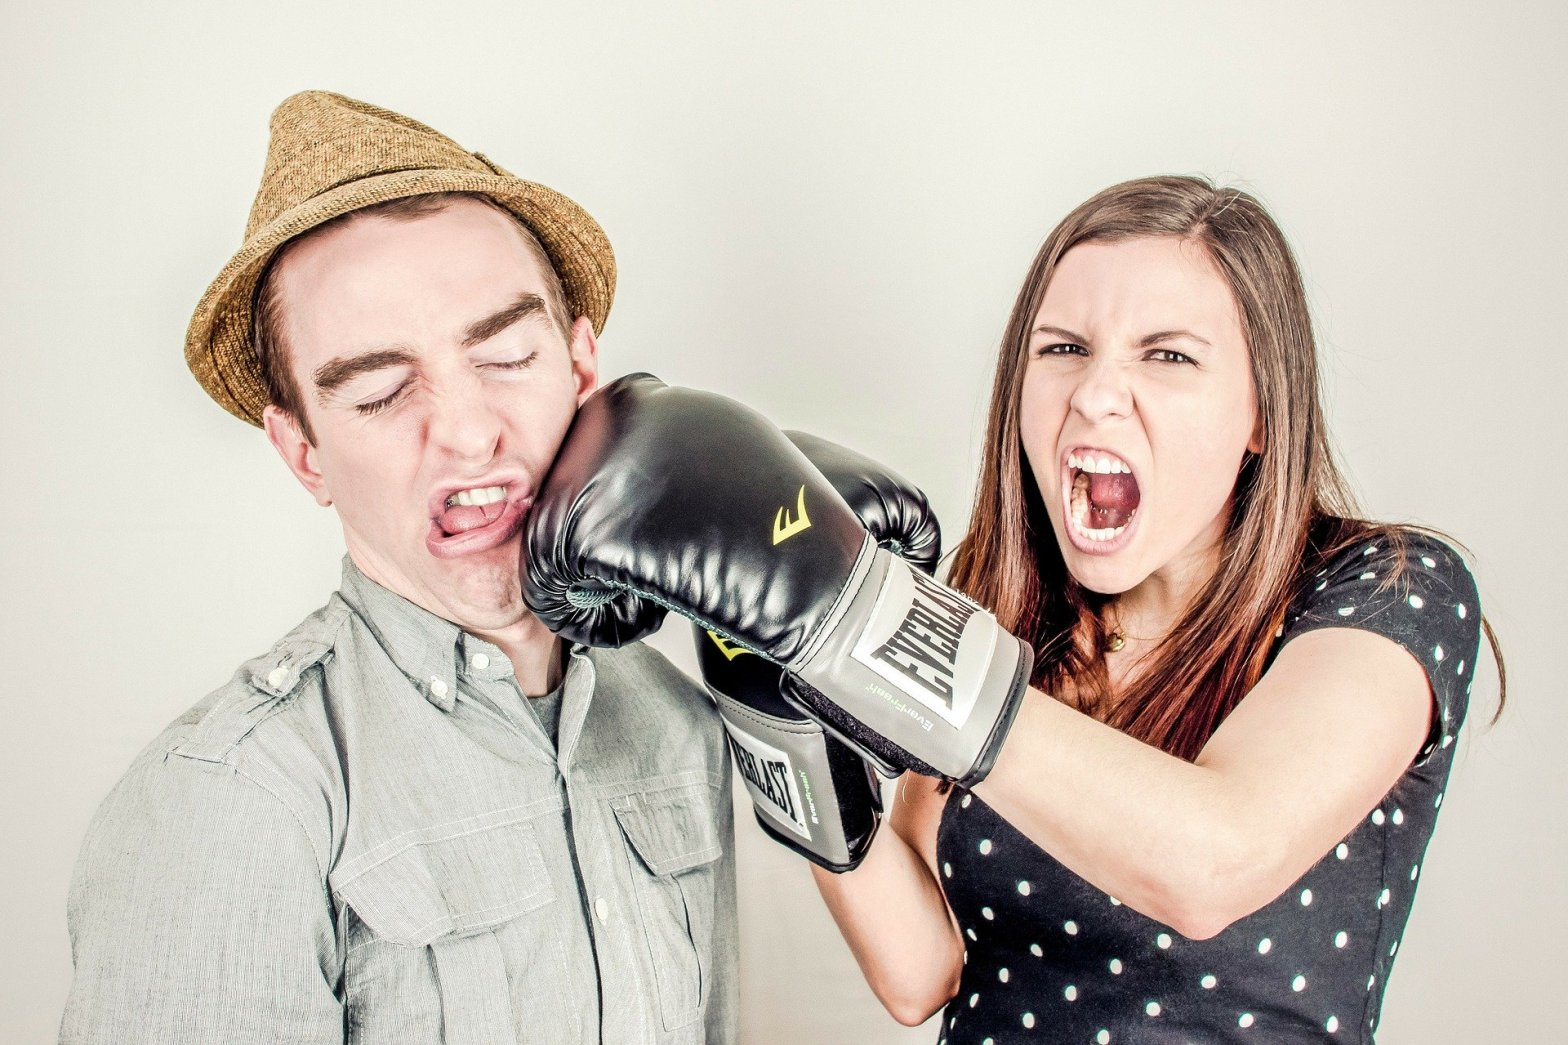 Screaming woman with boxing gloves, punching a man in the face, fighting in a relationship